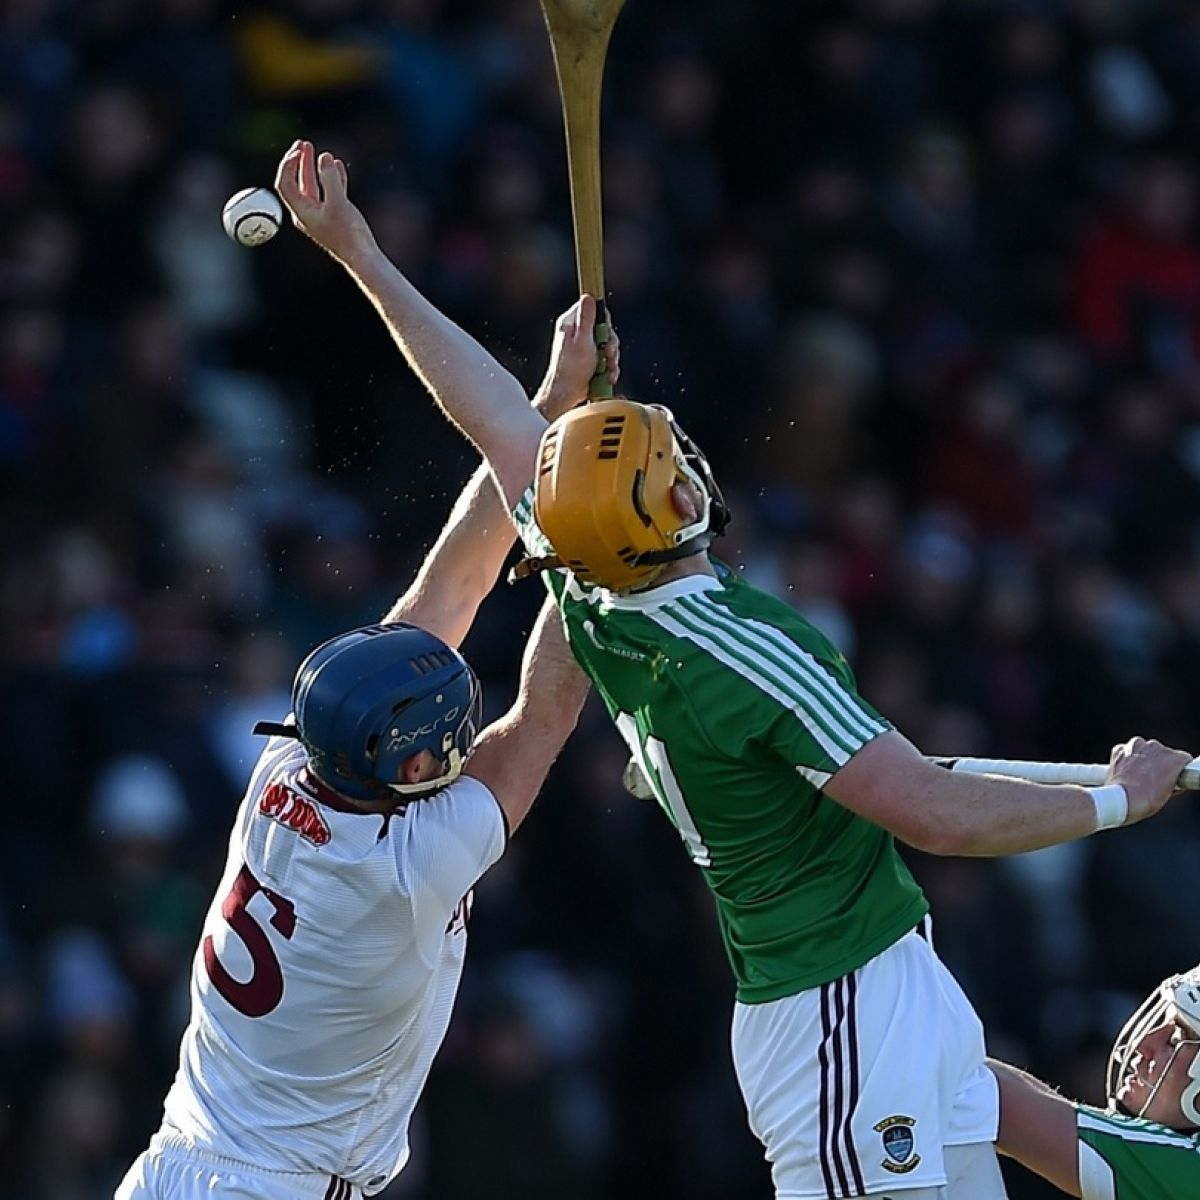 Hurlers qualify for Ring Cup semi-finals | Westmeath Examiner